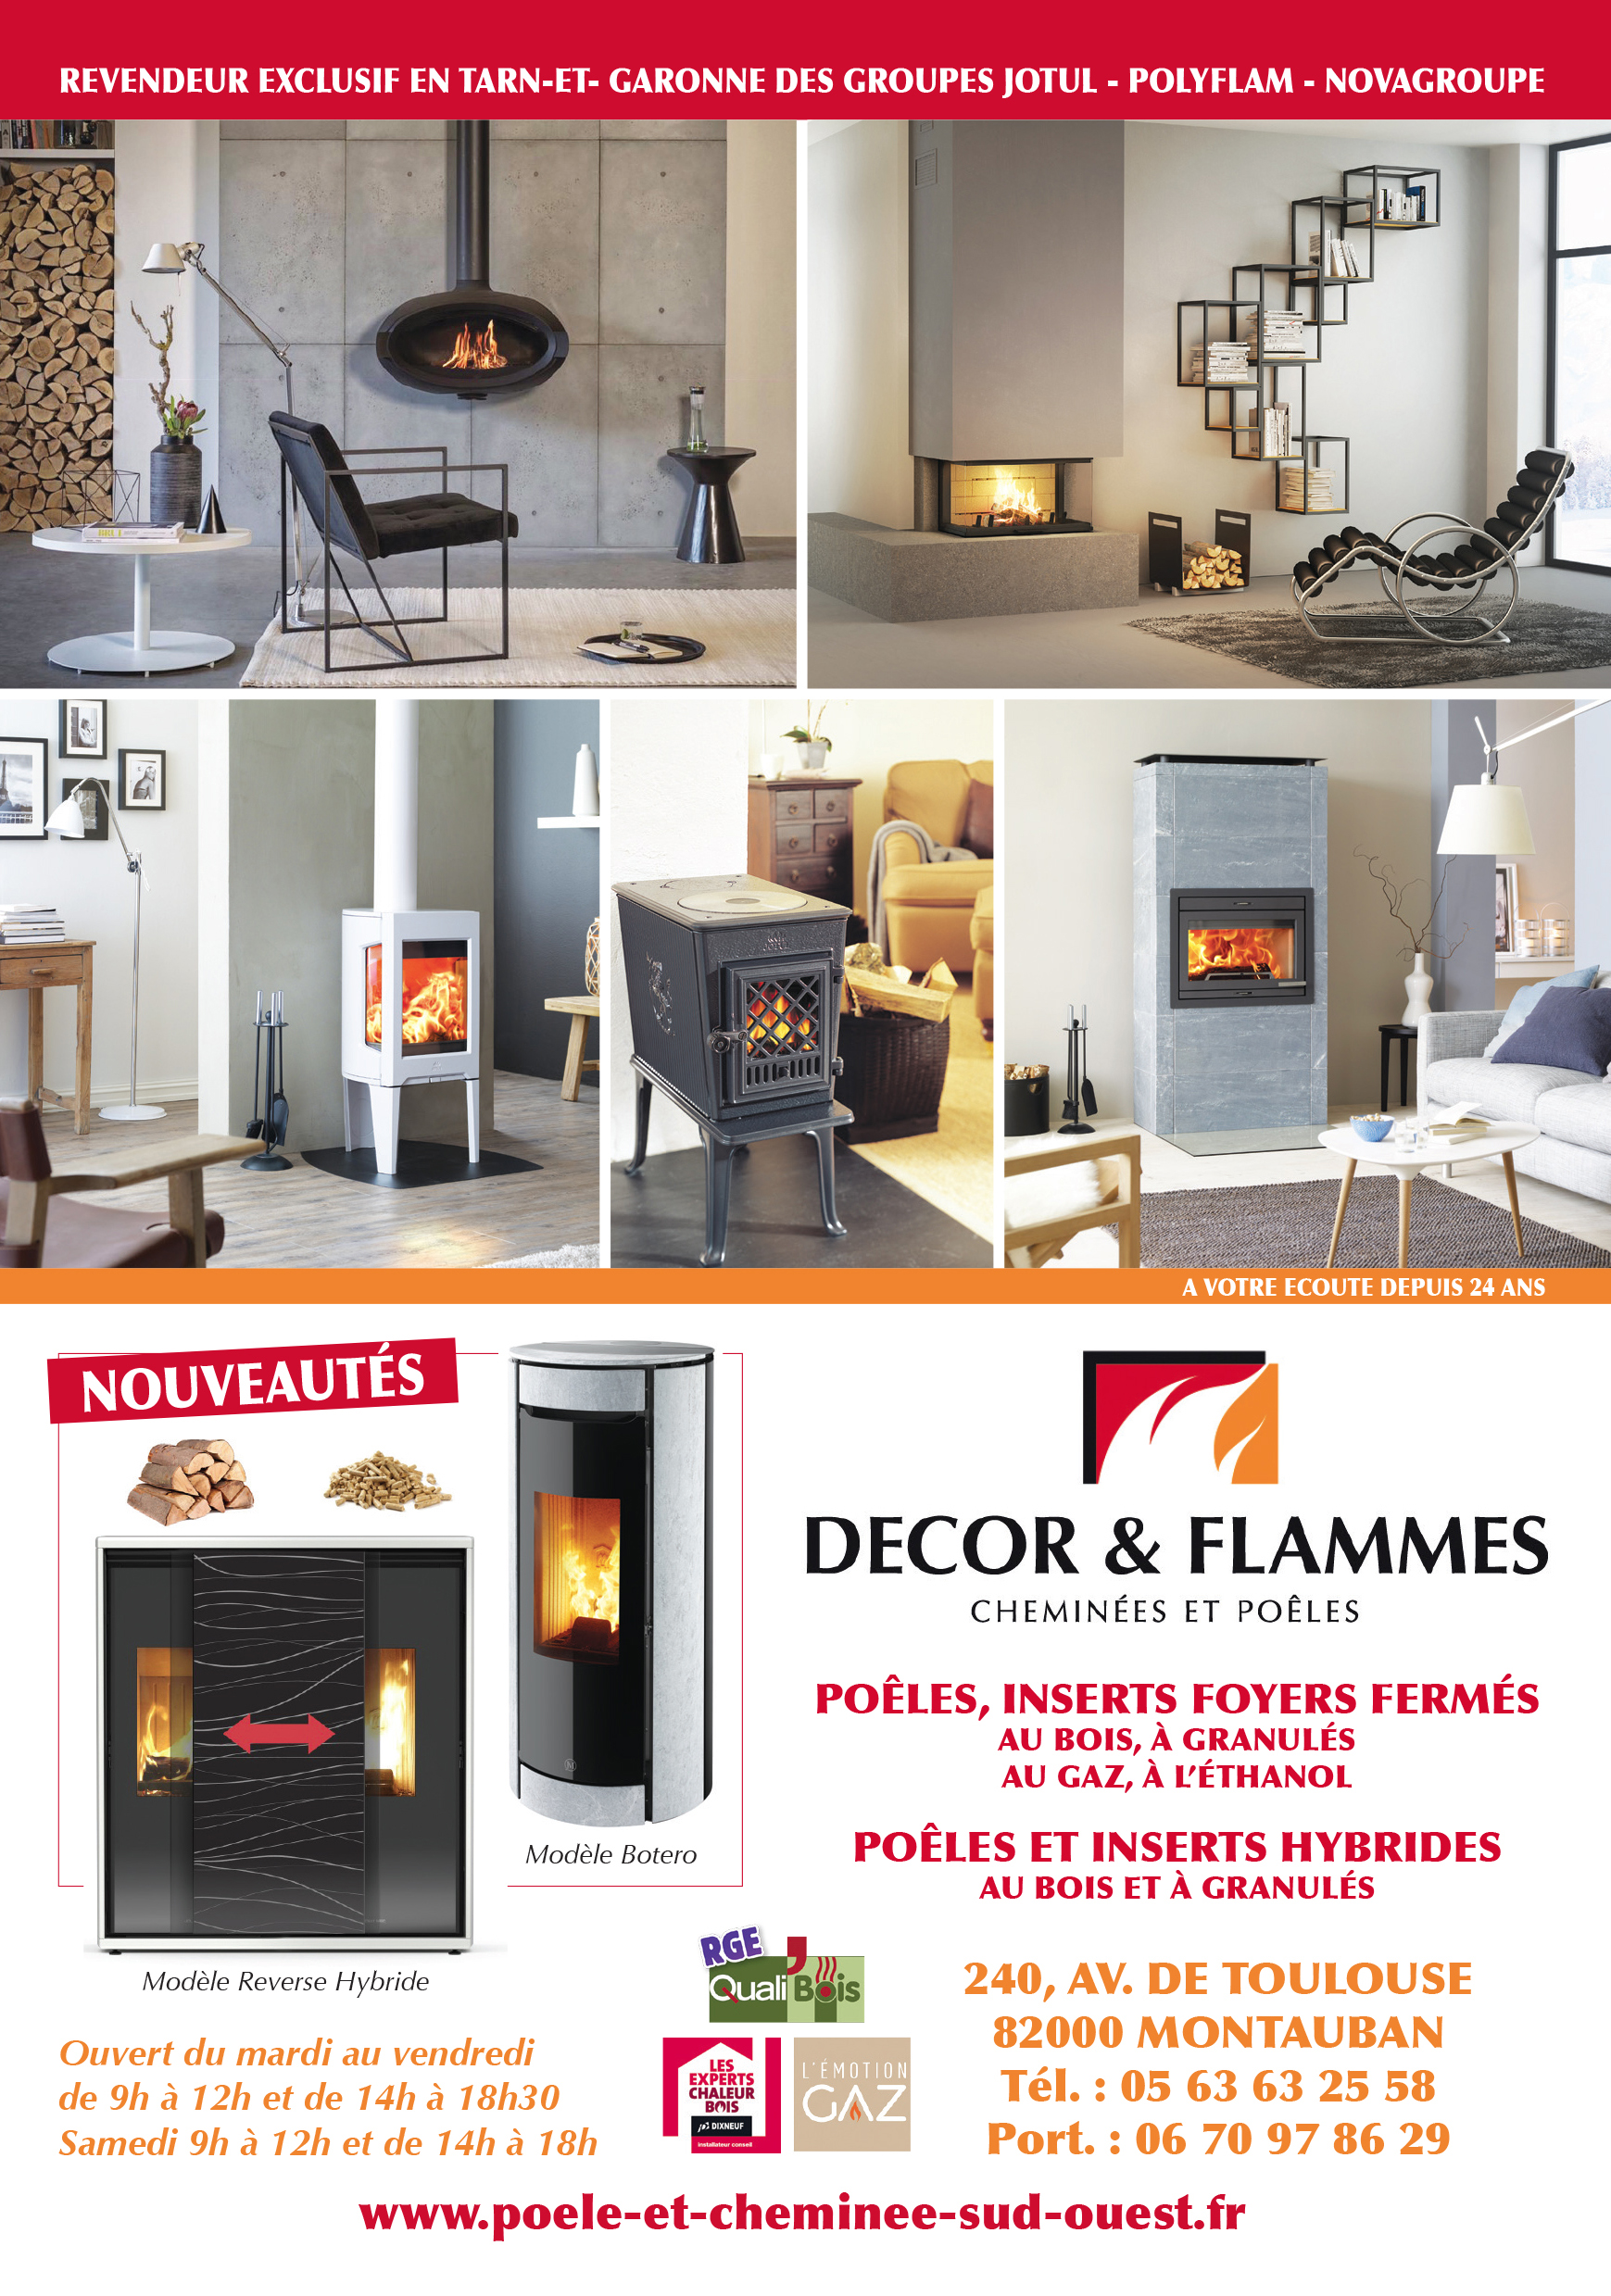 DECOR ET FLAMMES